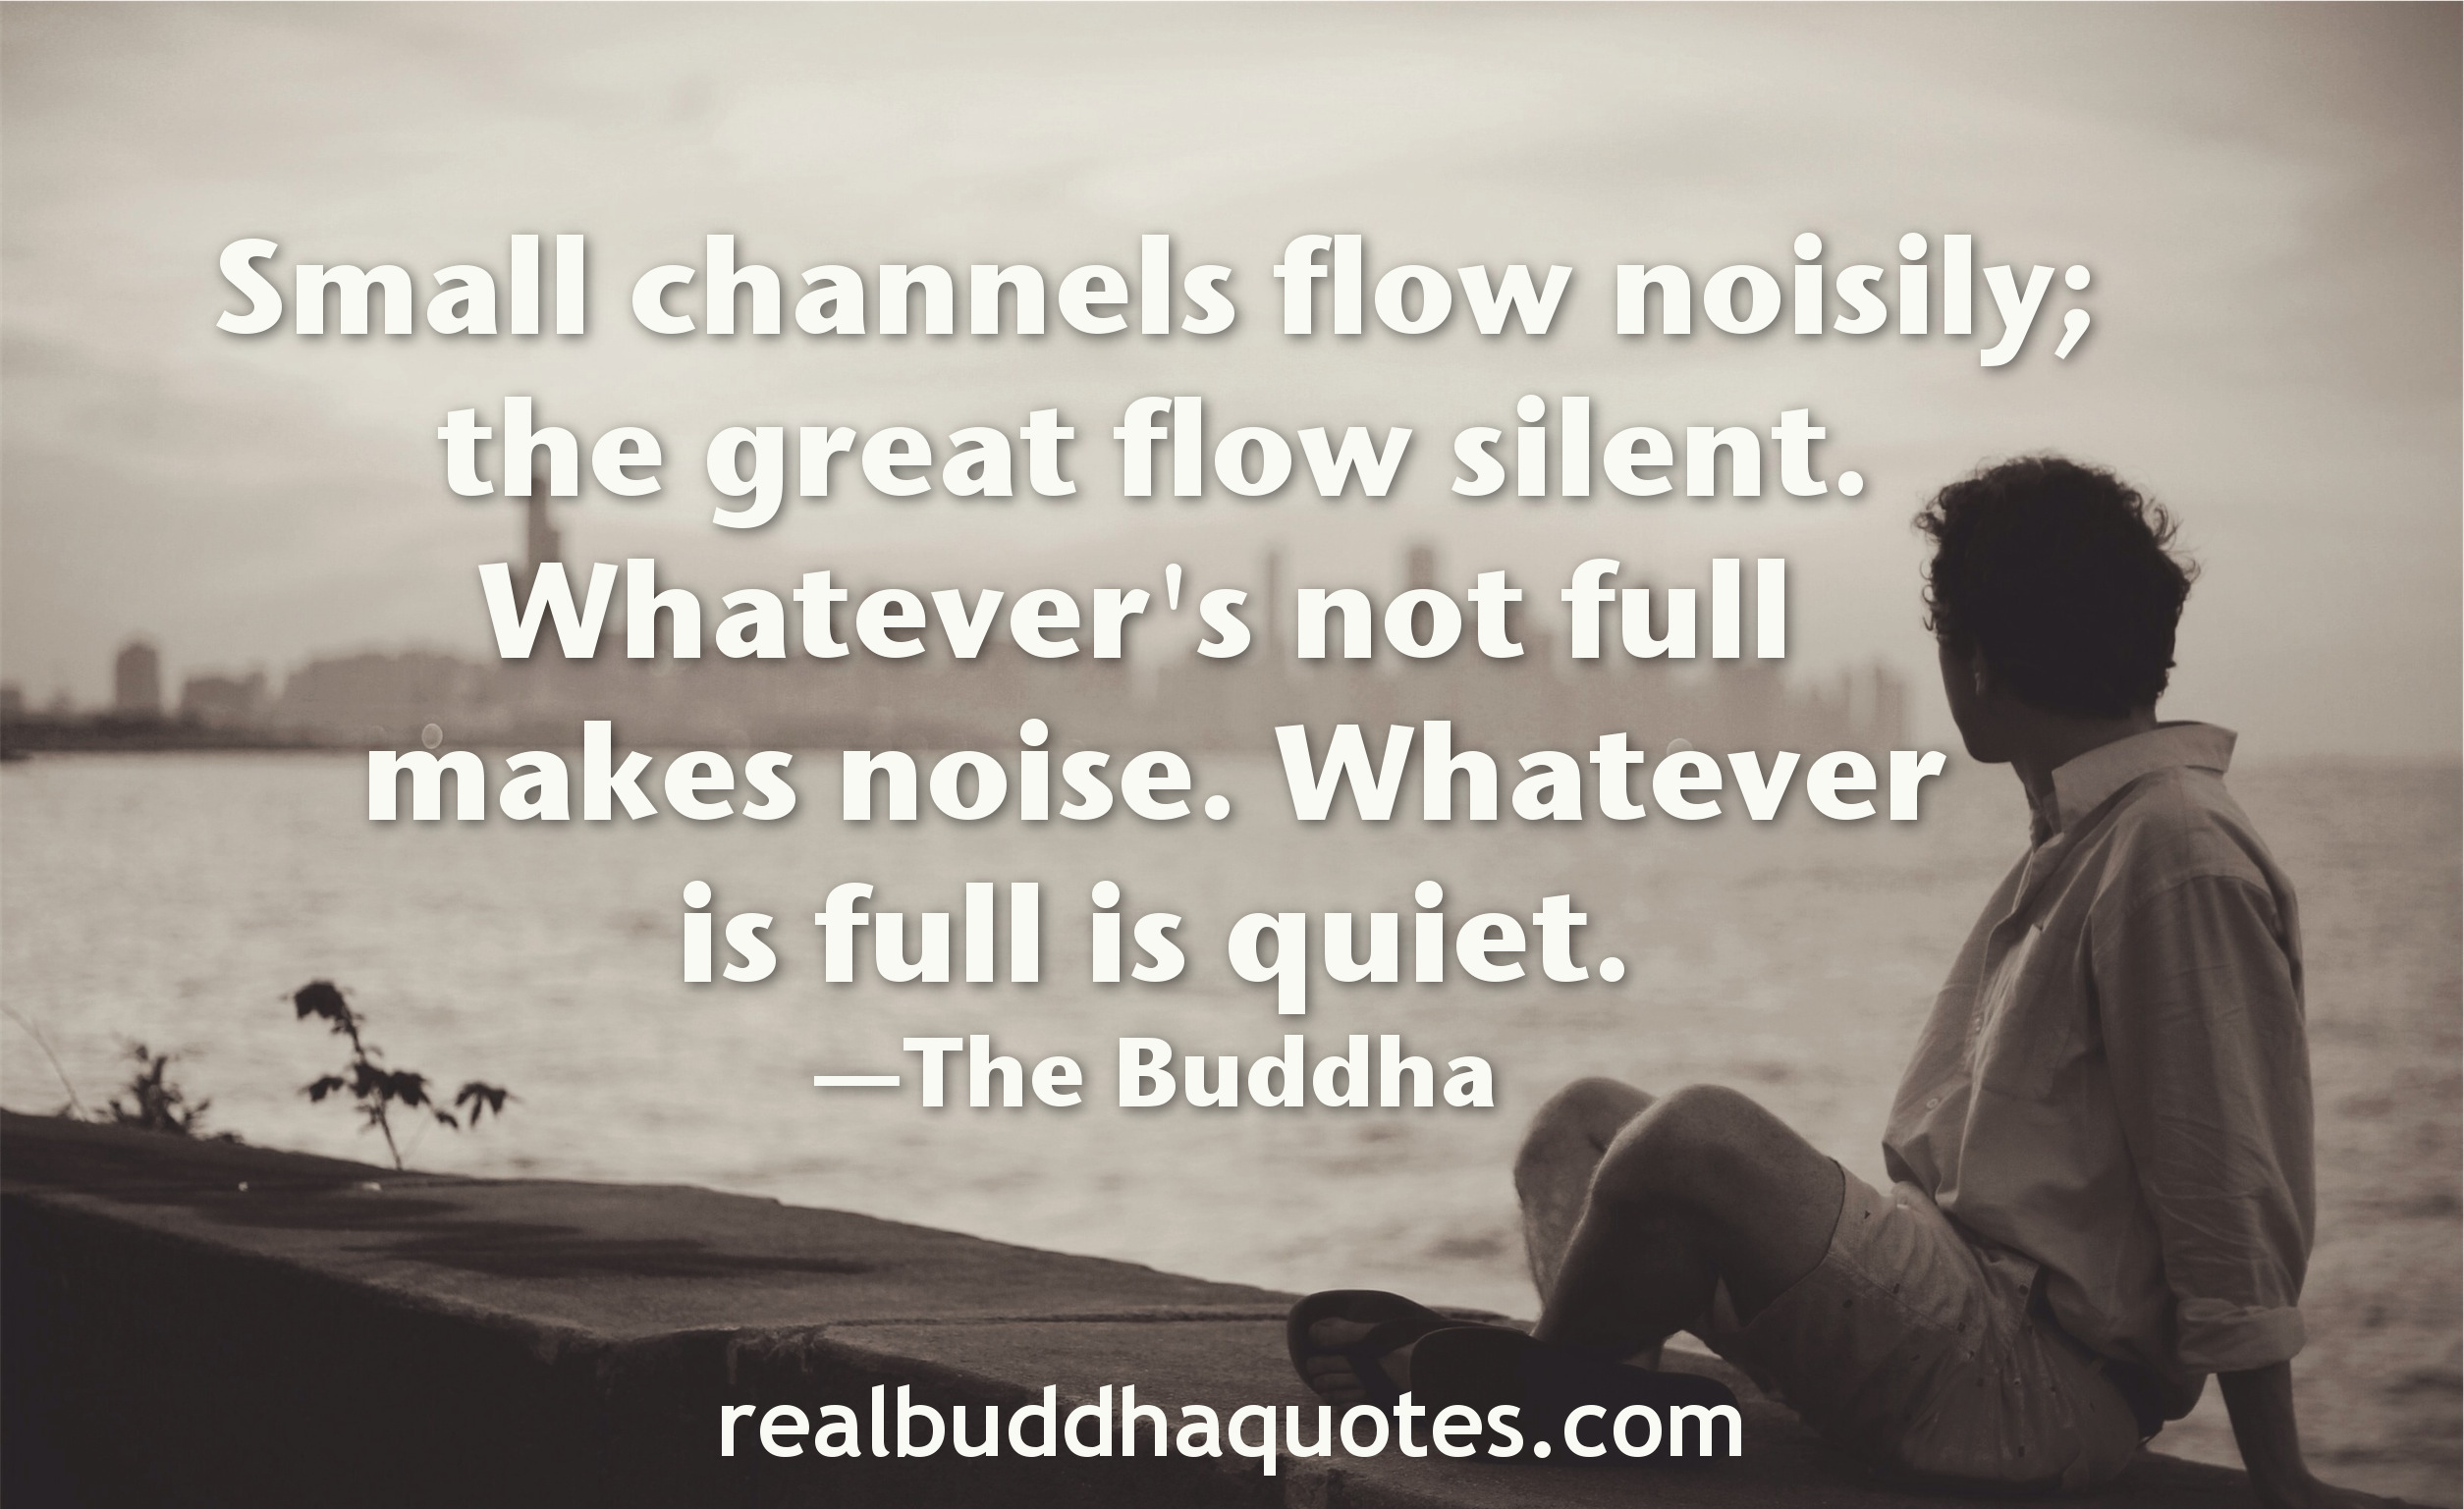 Buddhist Quotes On Love Real Buddha Quotes  Page 2  Verified Quotes From The Buddhist